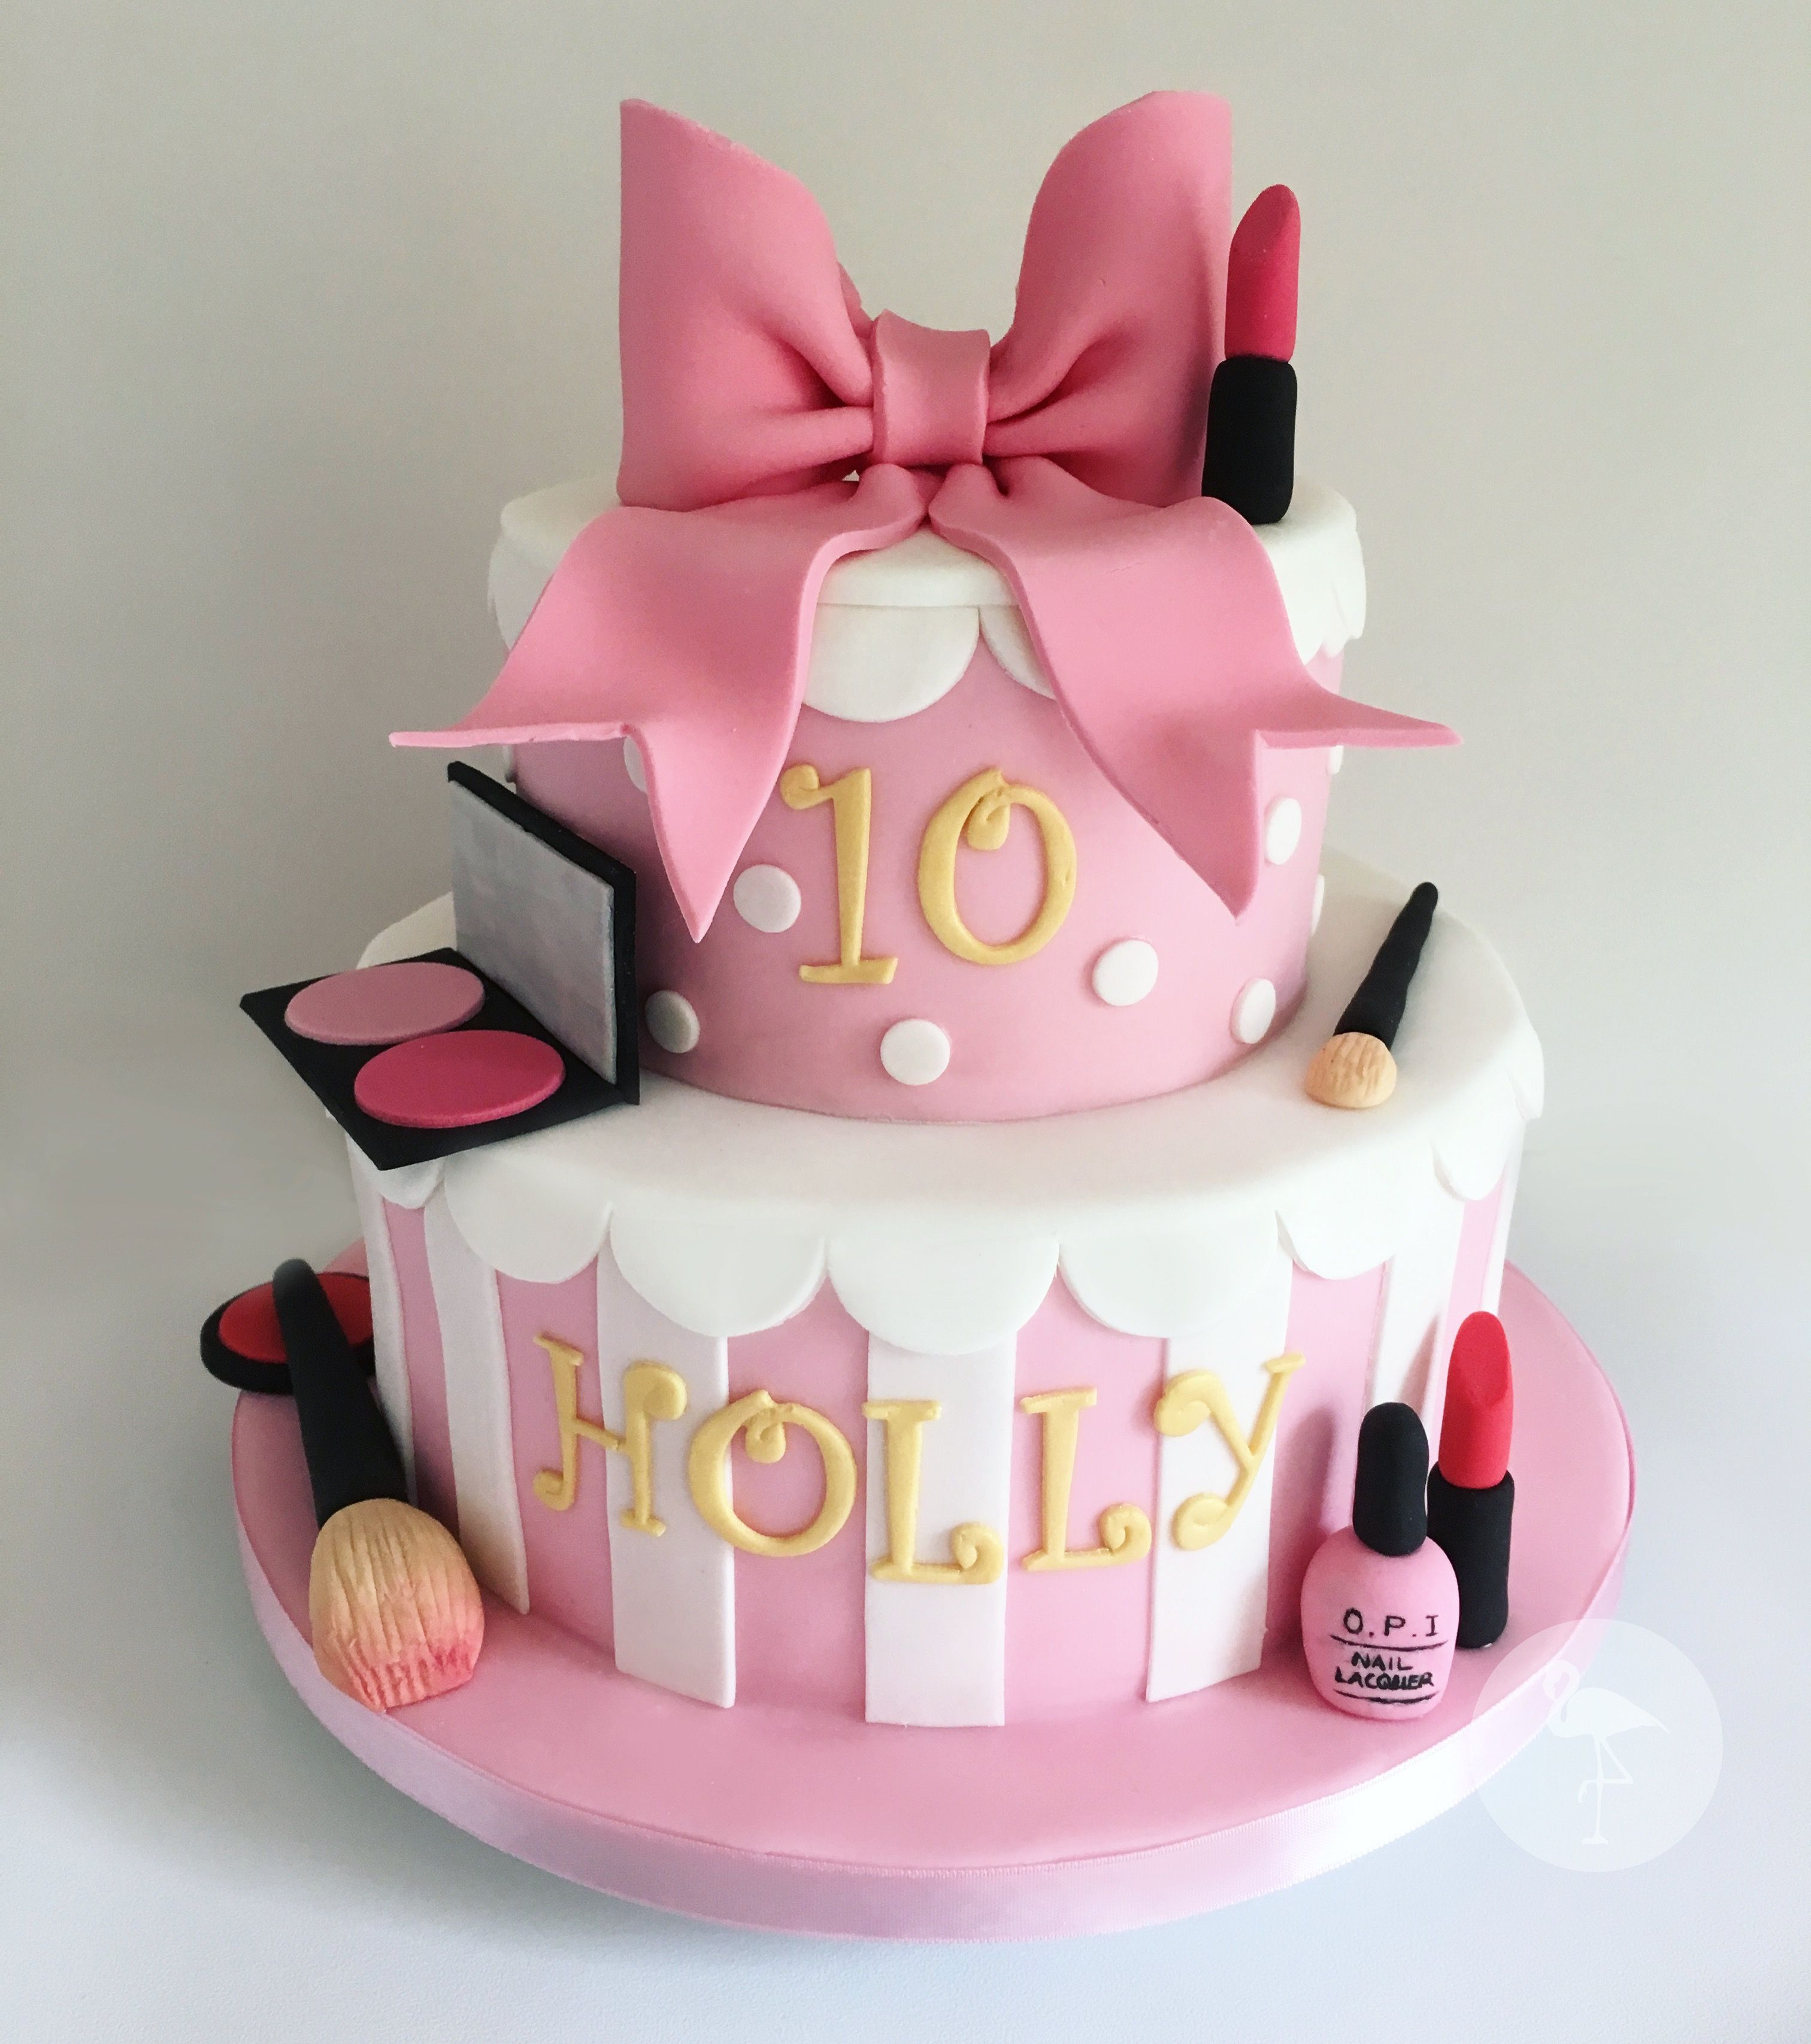 Girls Th Birthday Cake Makeup Beauty Bow Pink Our Occasion - 10th birthday cake